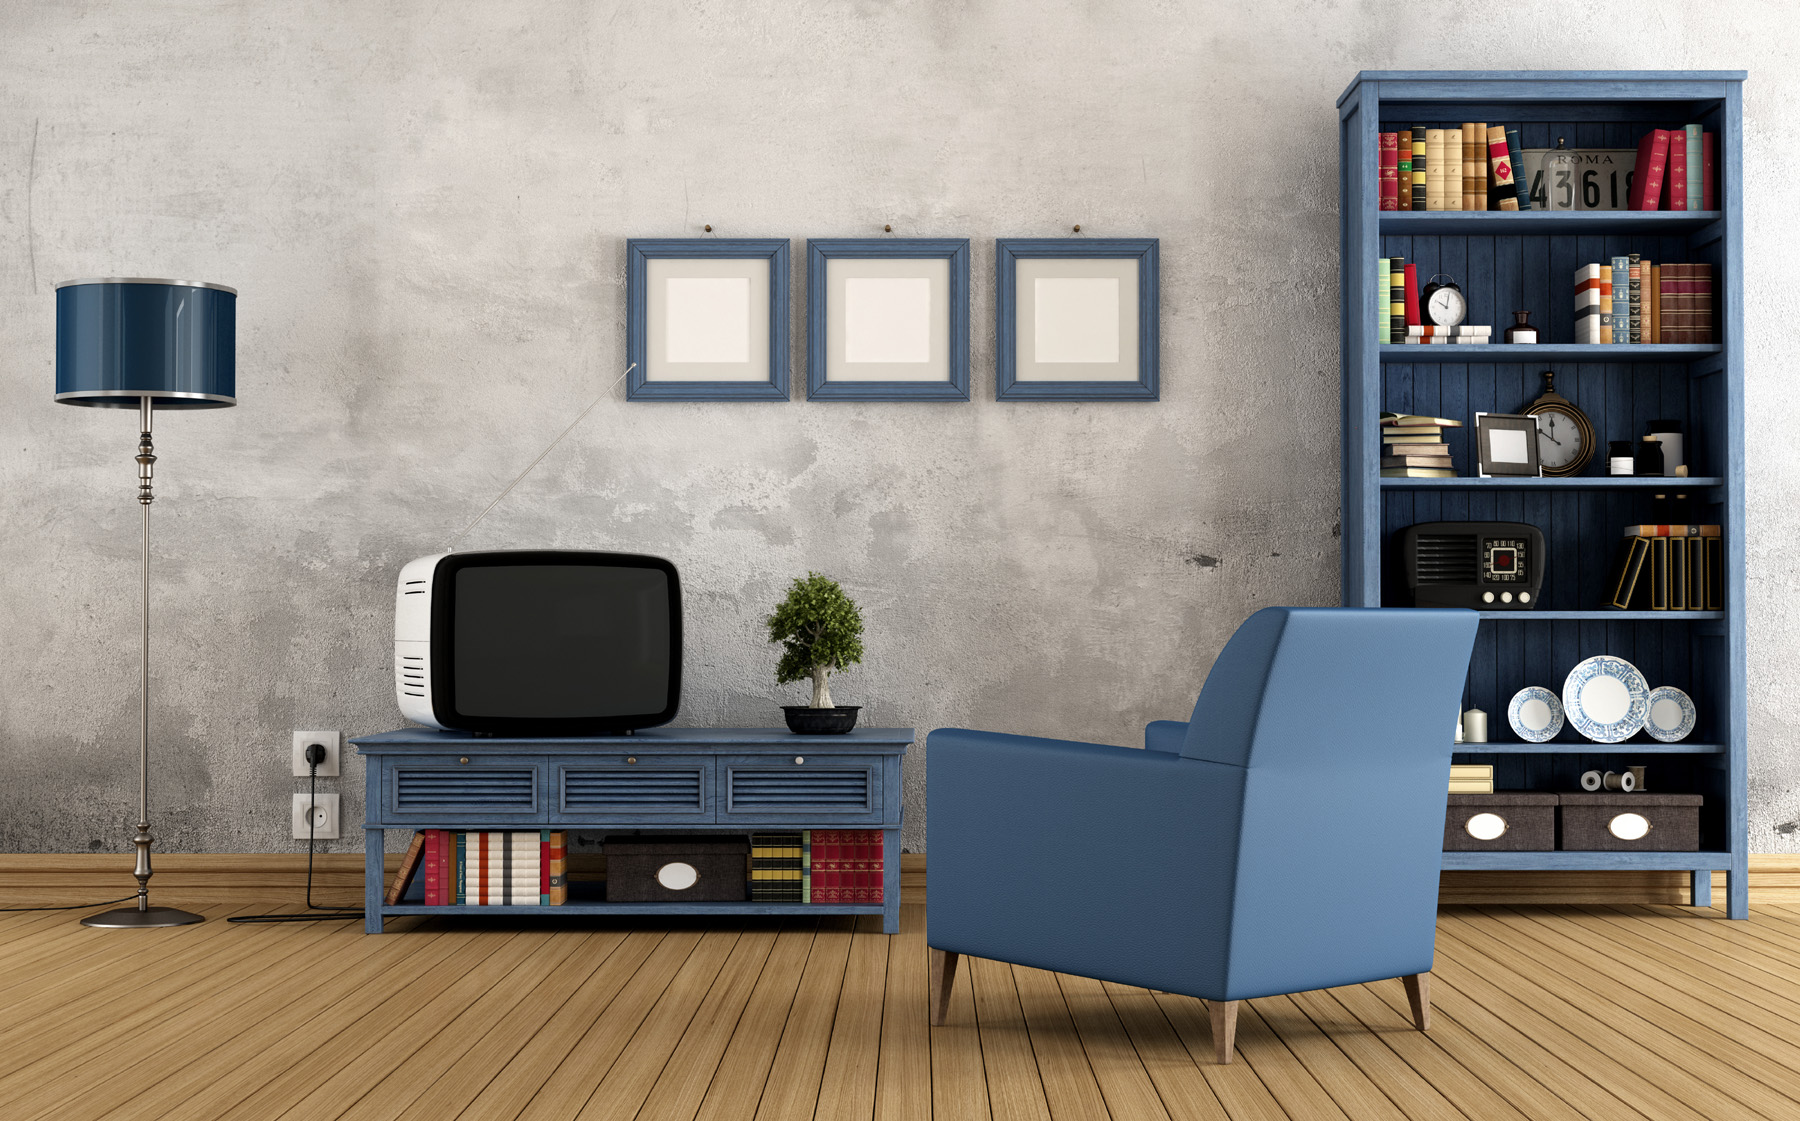 Display racks in the room with the TV 51496